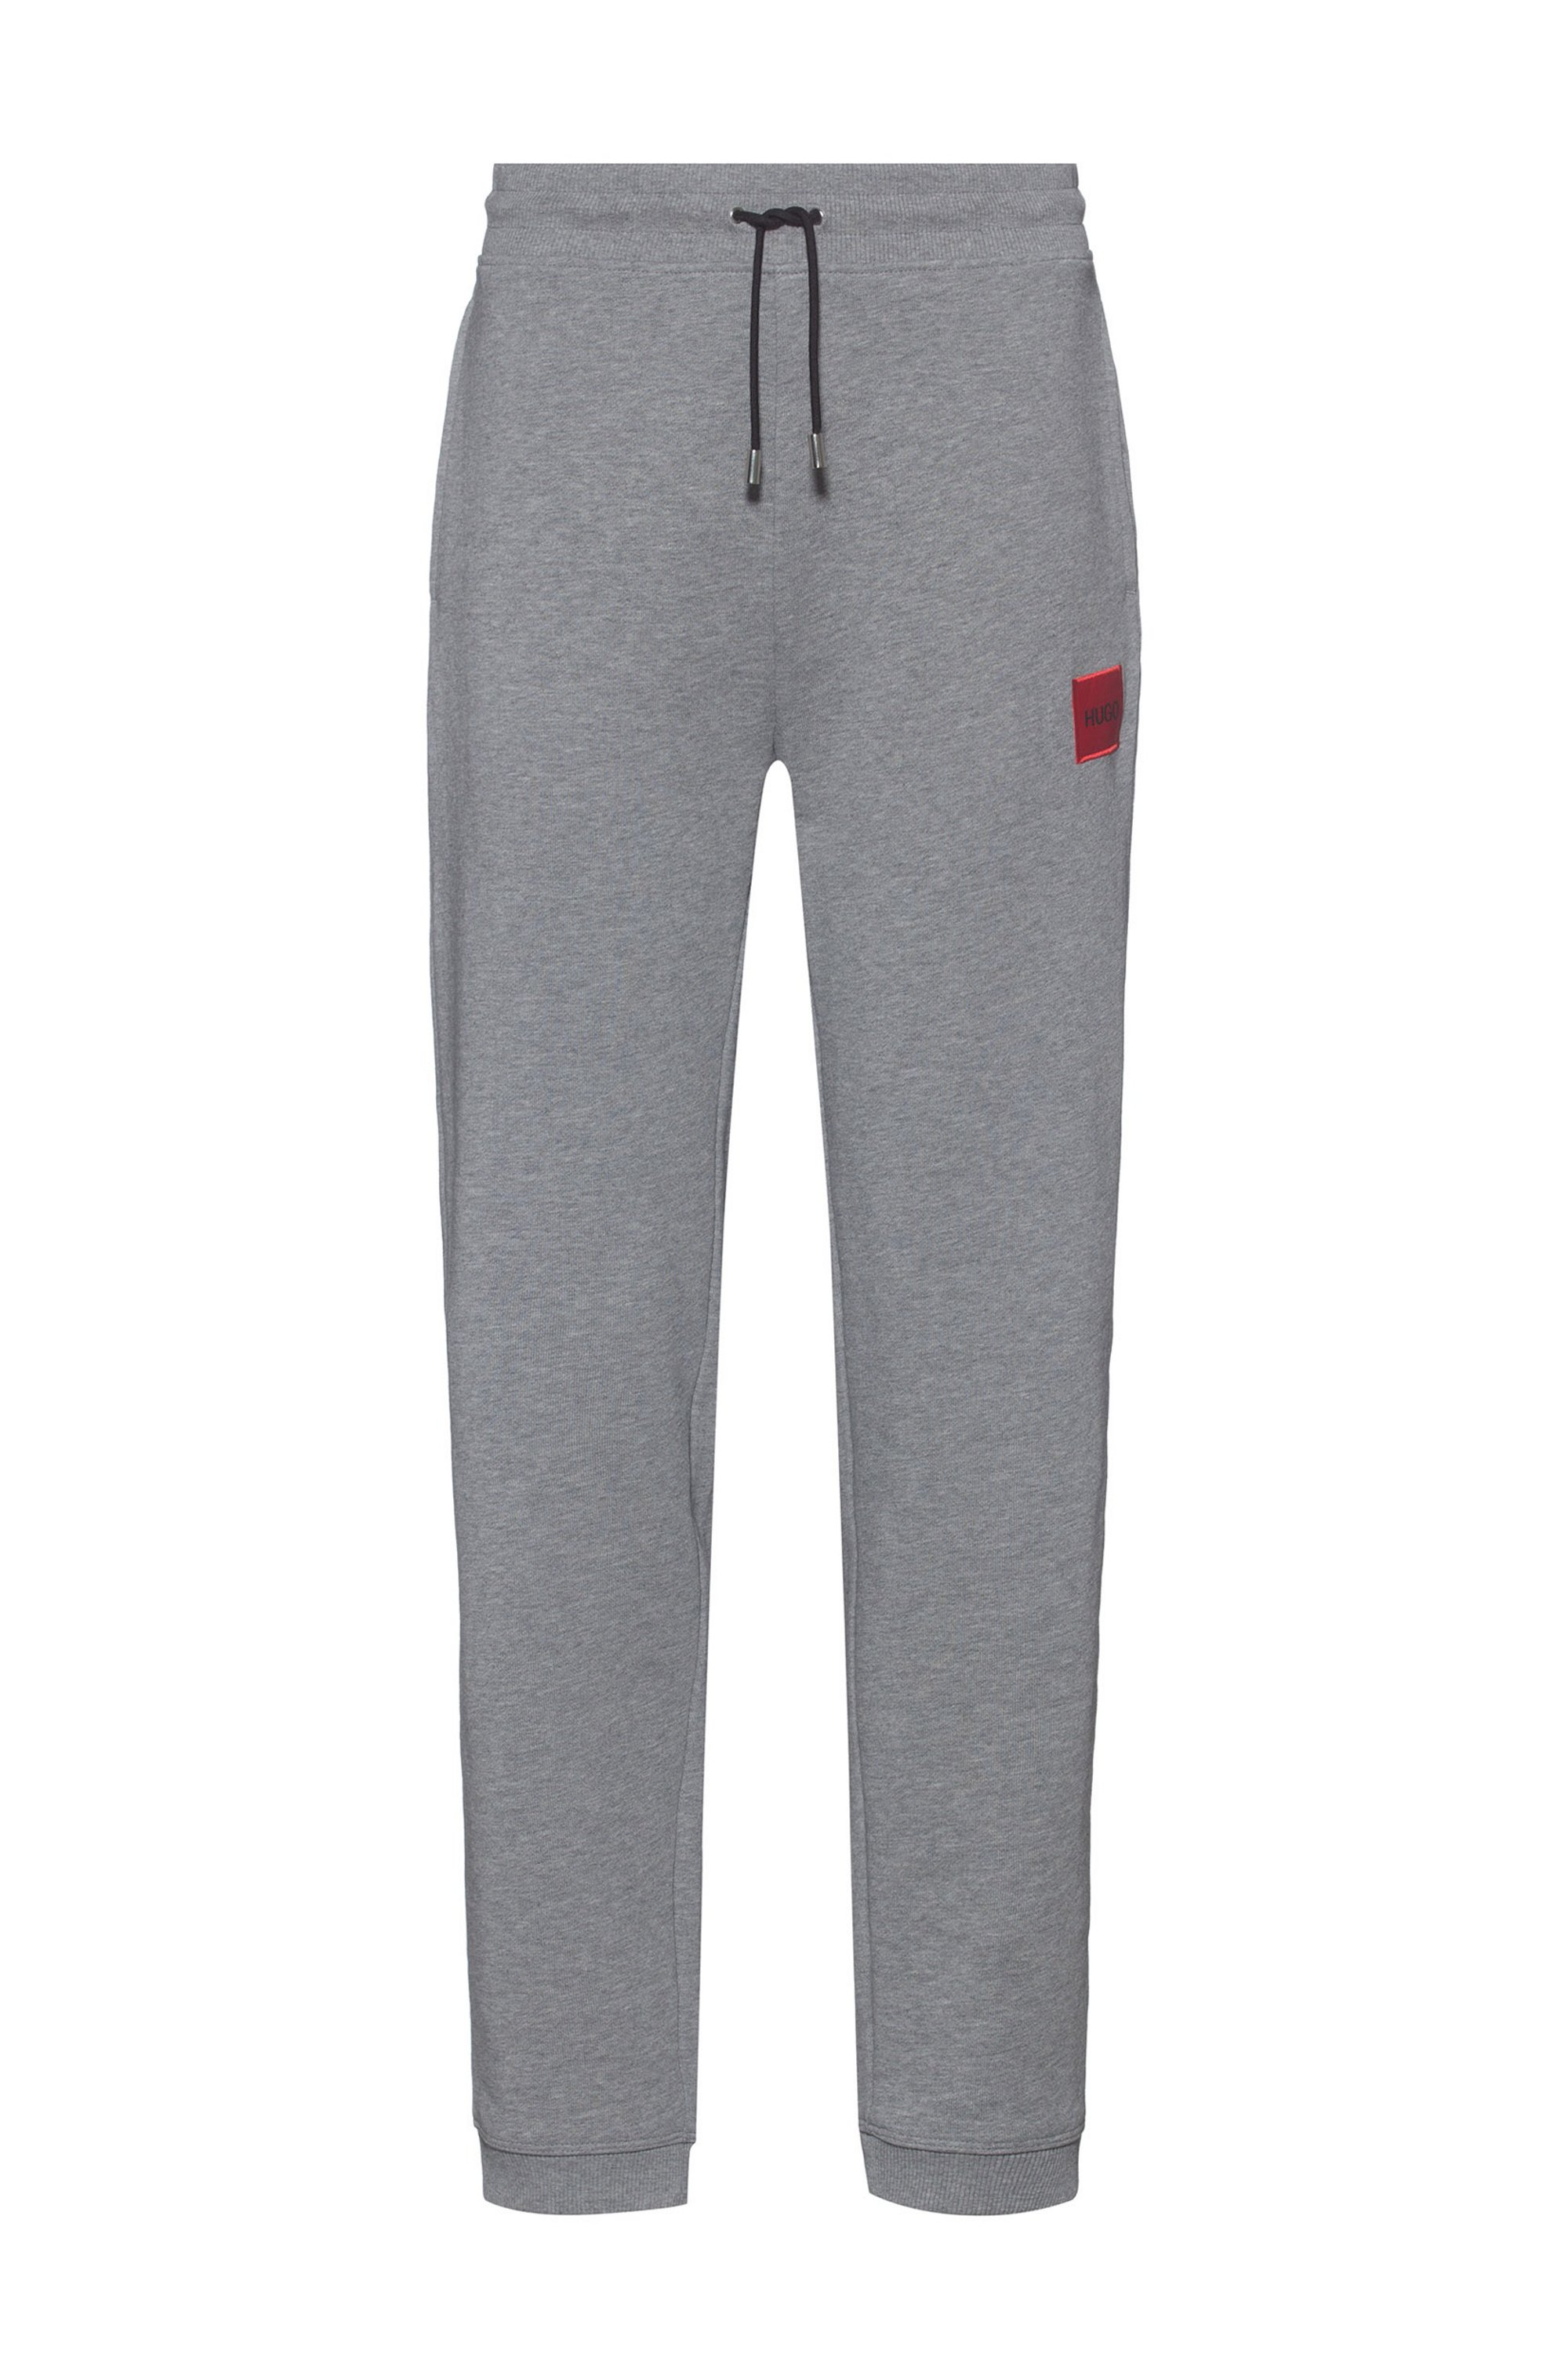 Cotton-terry tracksuit bottoms with red logo label, Grey